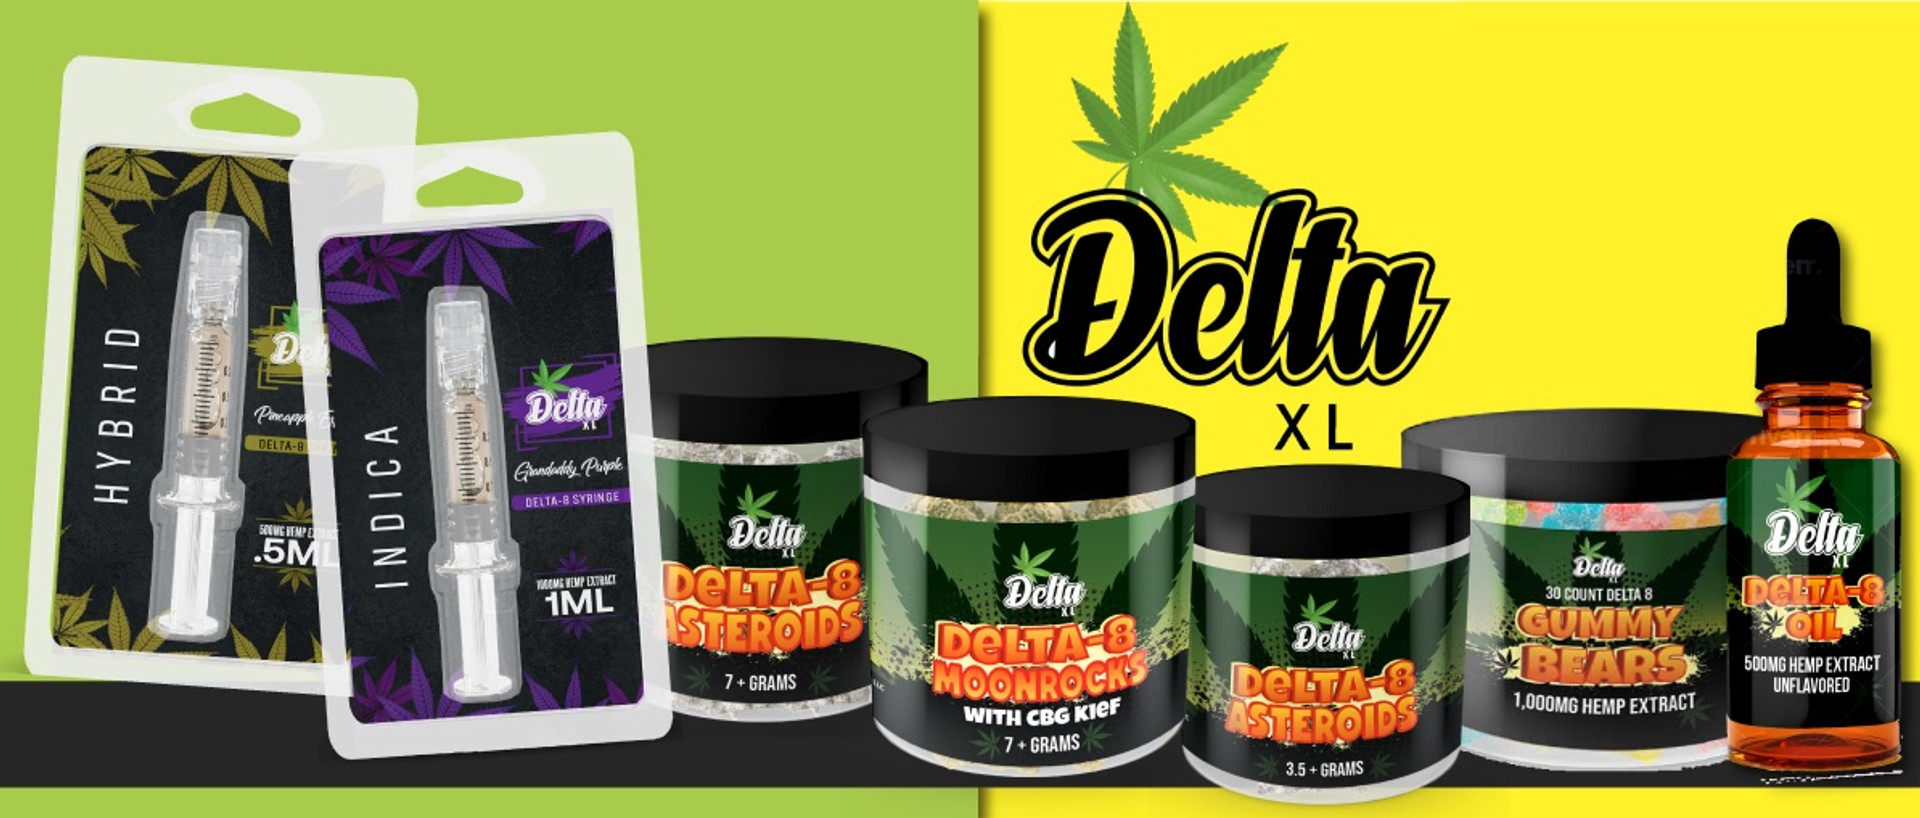 Delta XL Pure D8 Products are Crafted with passion, knowledge, and years of expertise. Formulated with 99.9% premium Delta 8 THC distillate providing an uplifting yet relaxing effect. Carefully manufactured in our state approved facility. CBDResellers.com